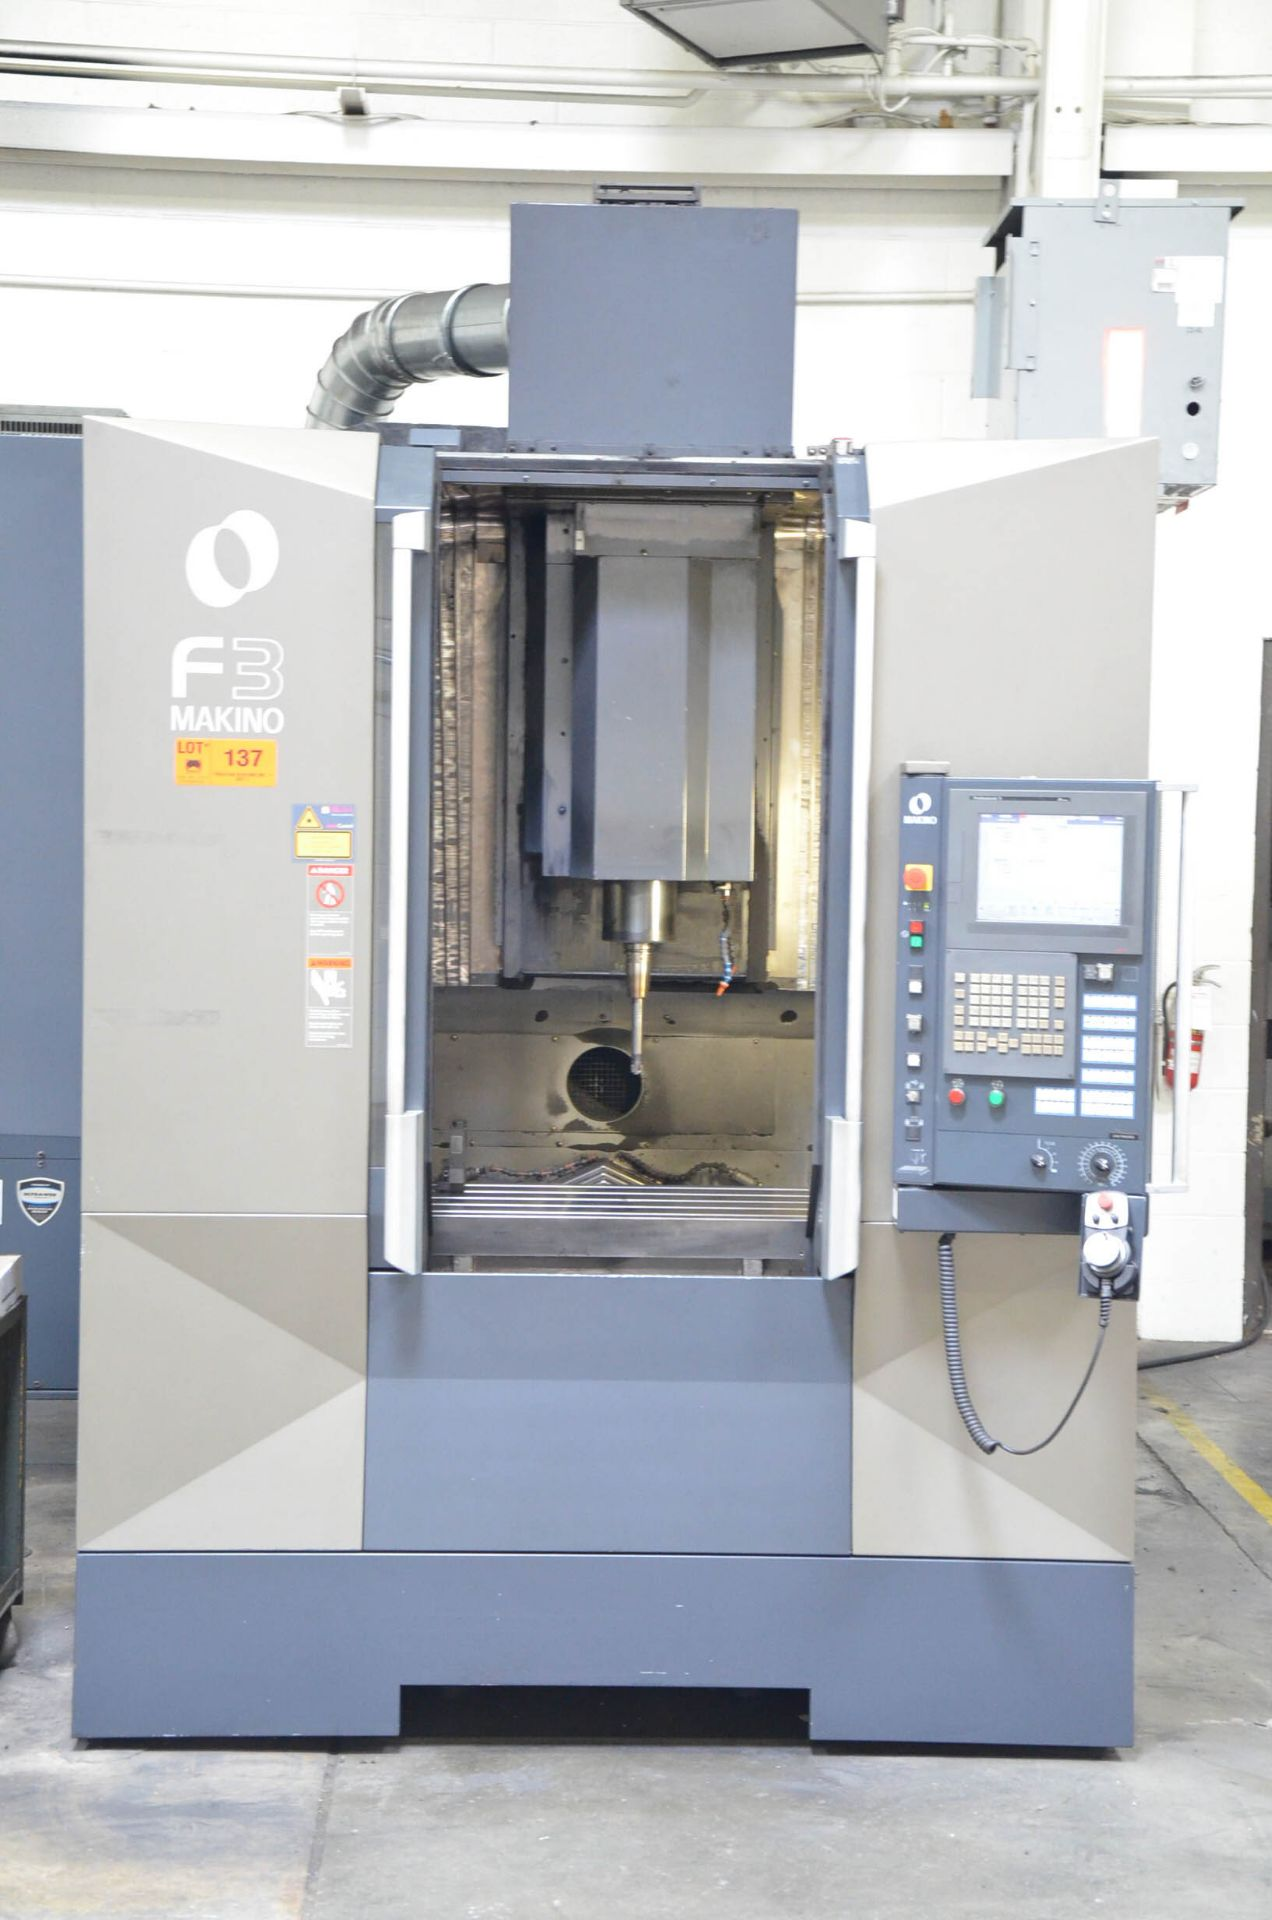 MAKINO (2012) F3 CNC VERTICAL MACHINING CENTER WITH MAKINO PROFESSIONAL 5 TOUCHSCREEN CNC CONTROL, - Image 3 of 9